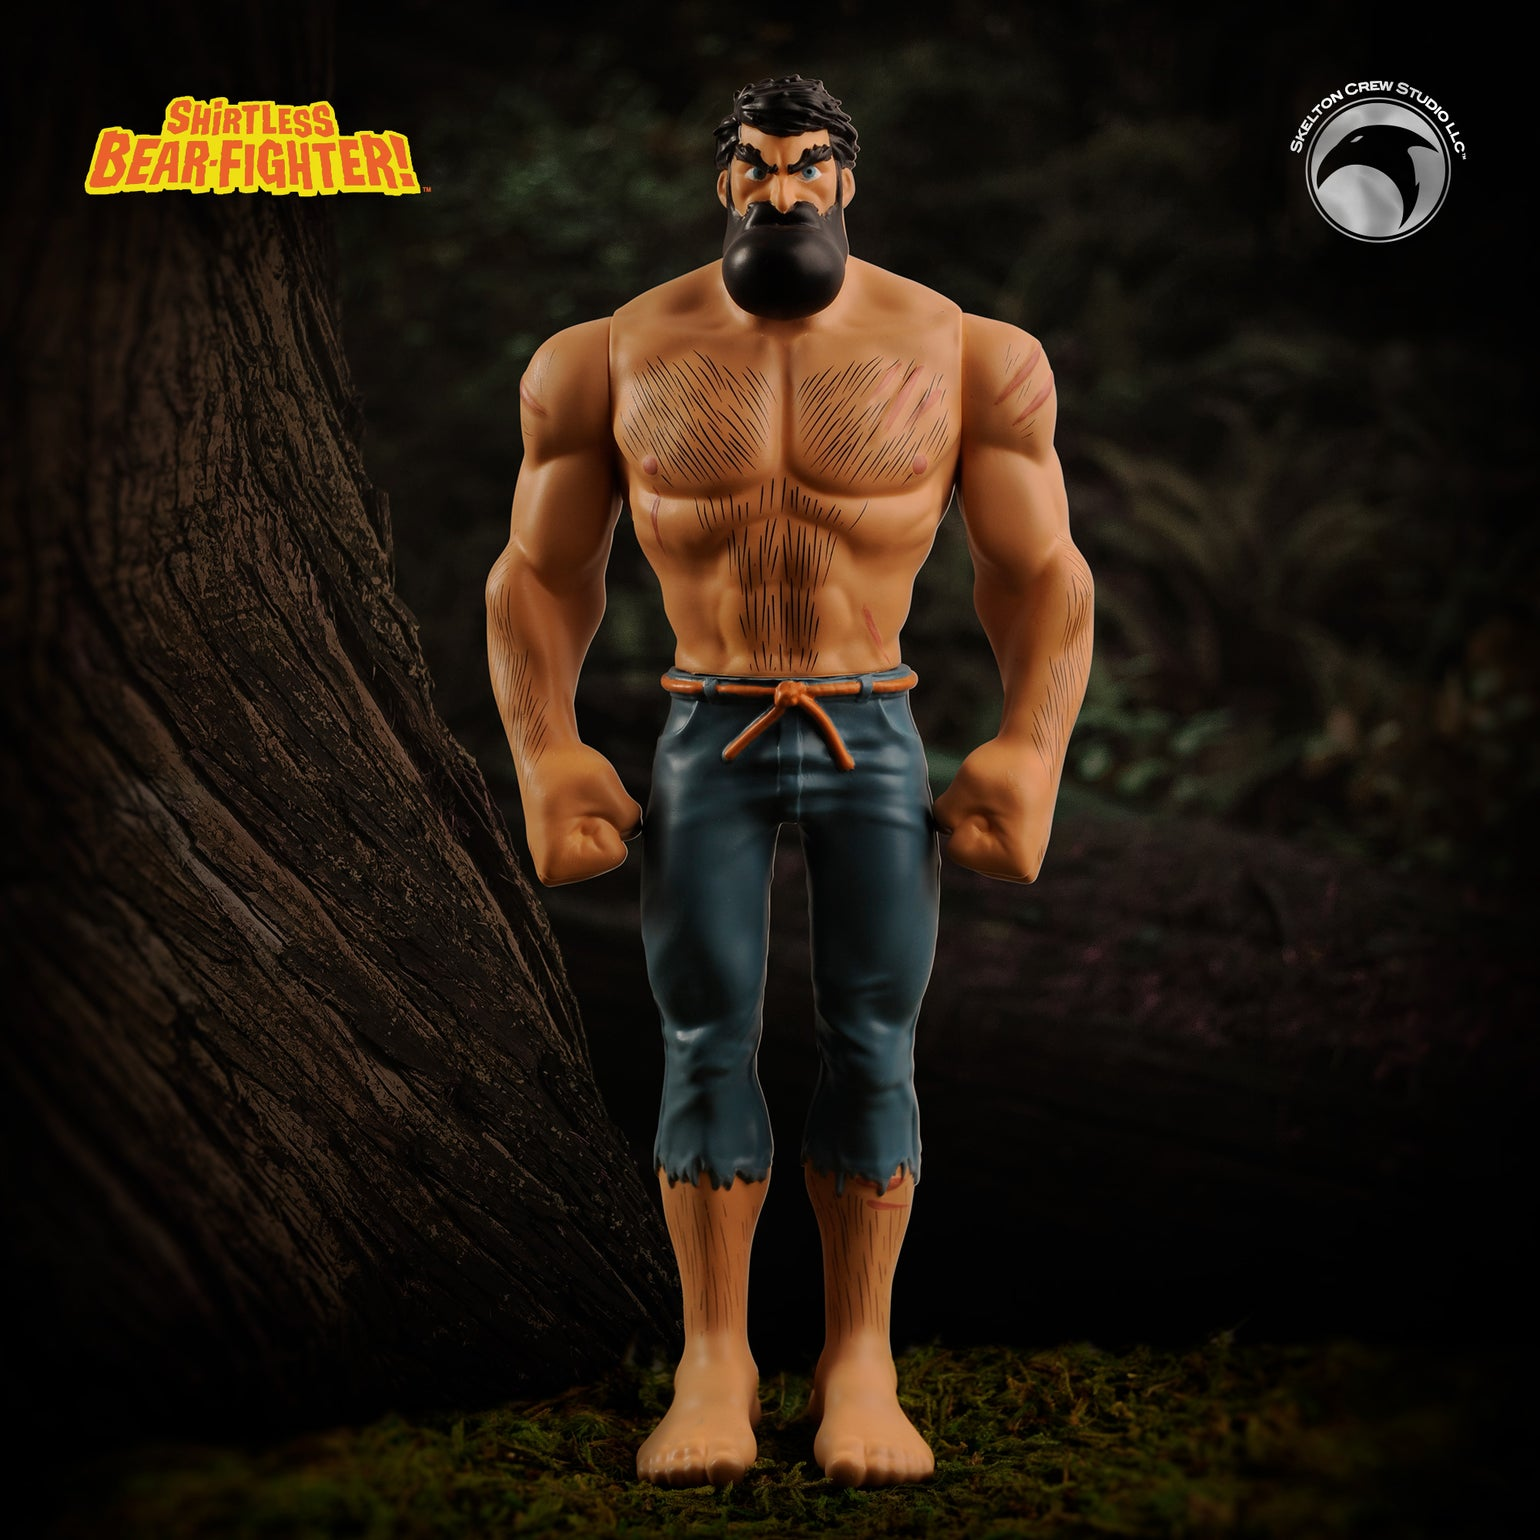 Image of Shirtless Bear-Fighter: Limited Edition Shirtless Bear-Fighter vinyl w/Bear Rug! BACKROOM FIND!